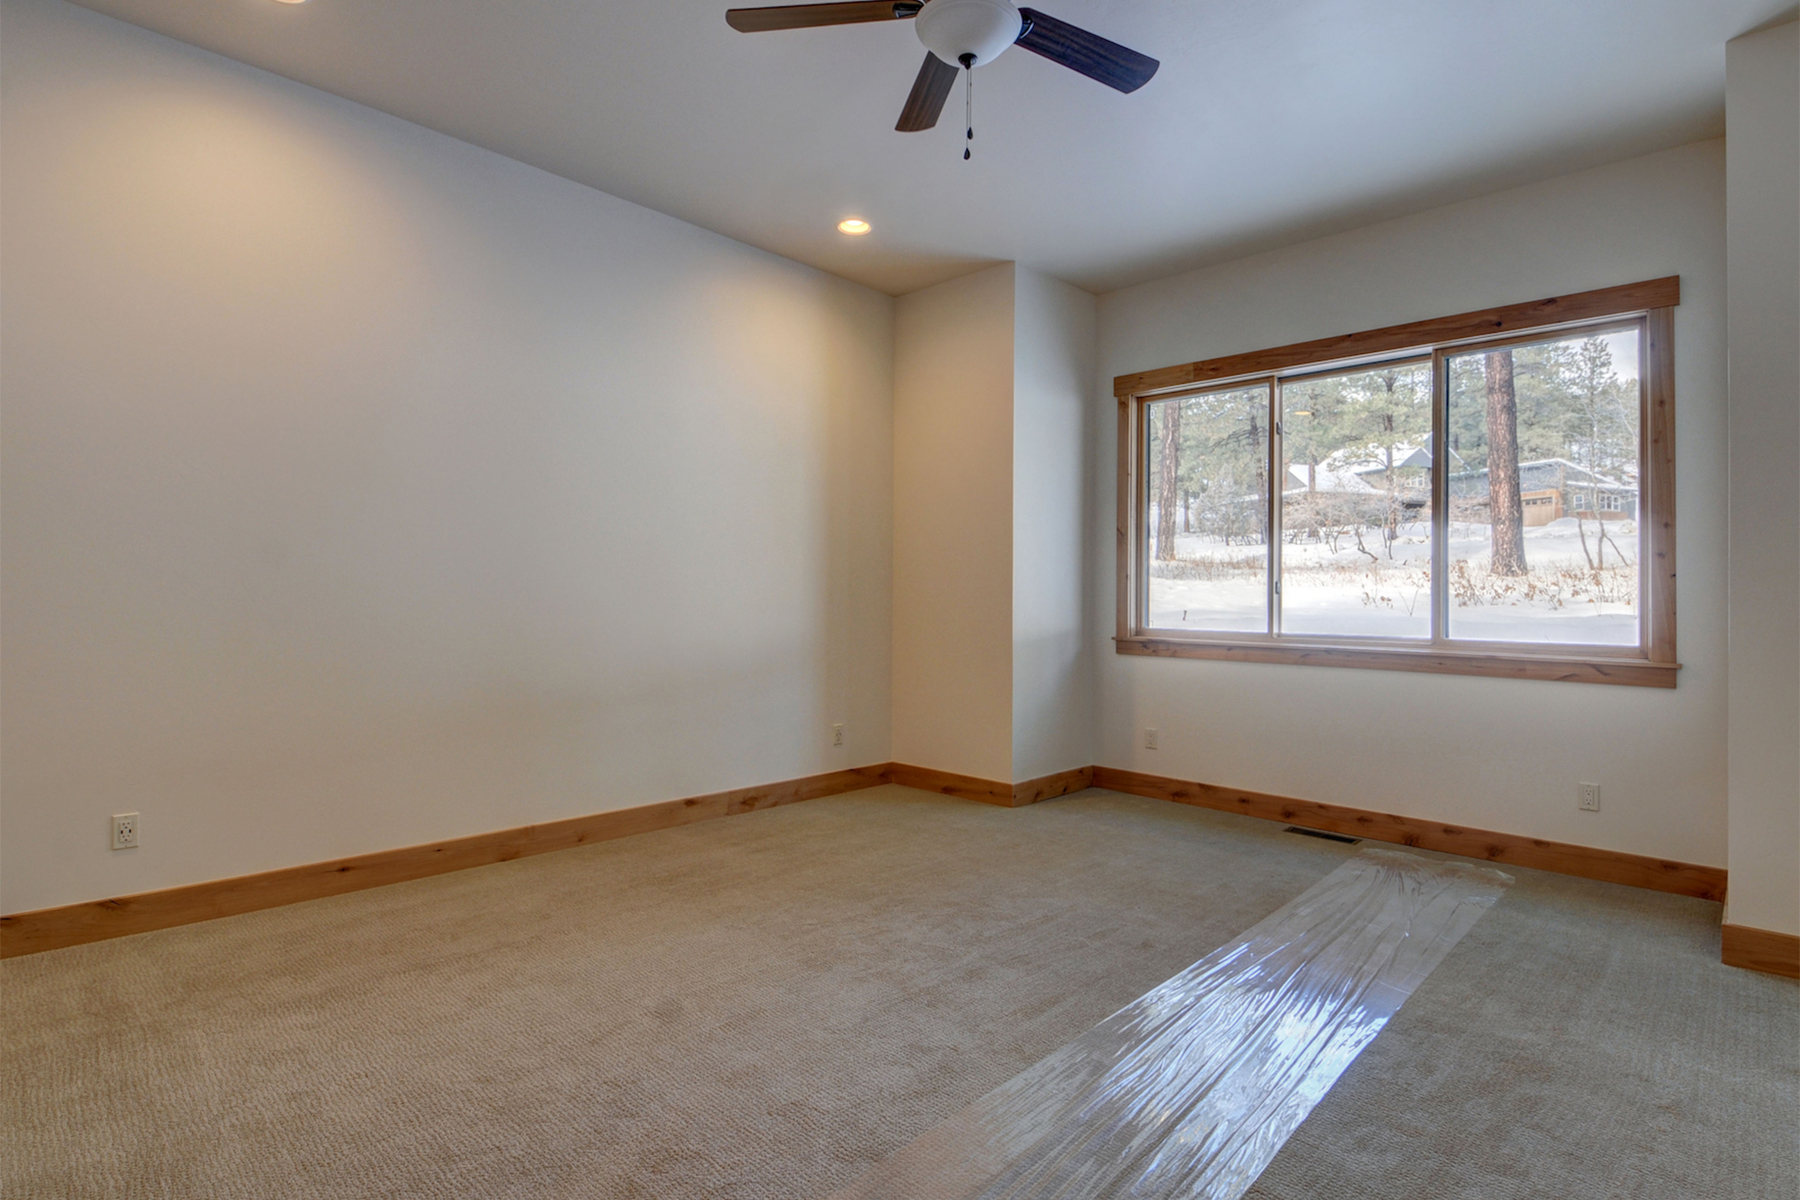 Additional photo for property listing at 7 Canyon Pines Place 7 Canyon Pines Place Durango, Colorado 81301 United States